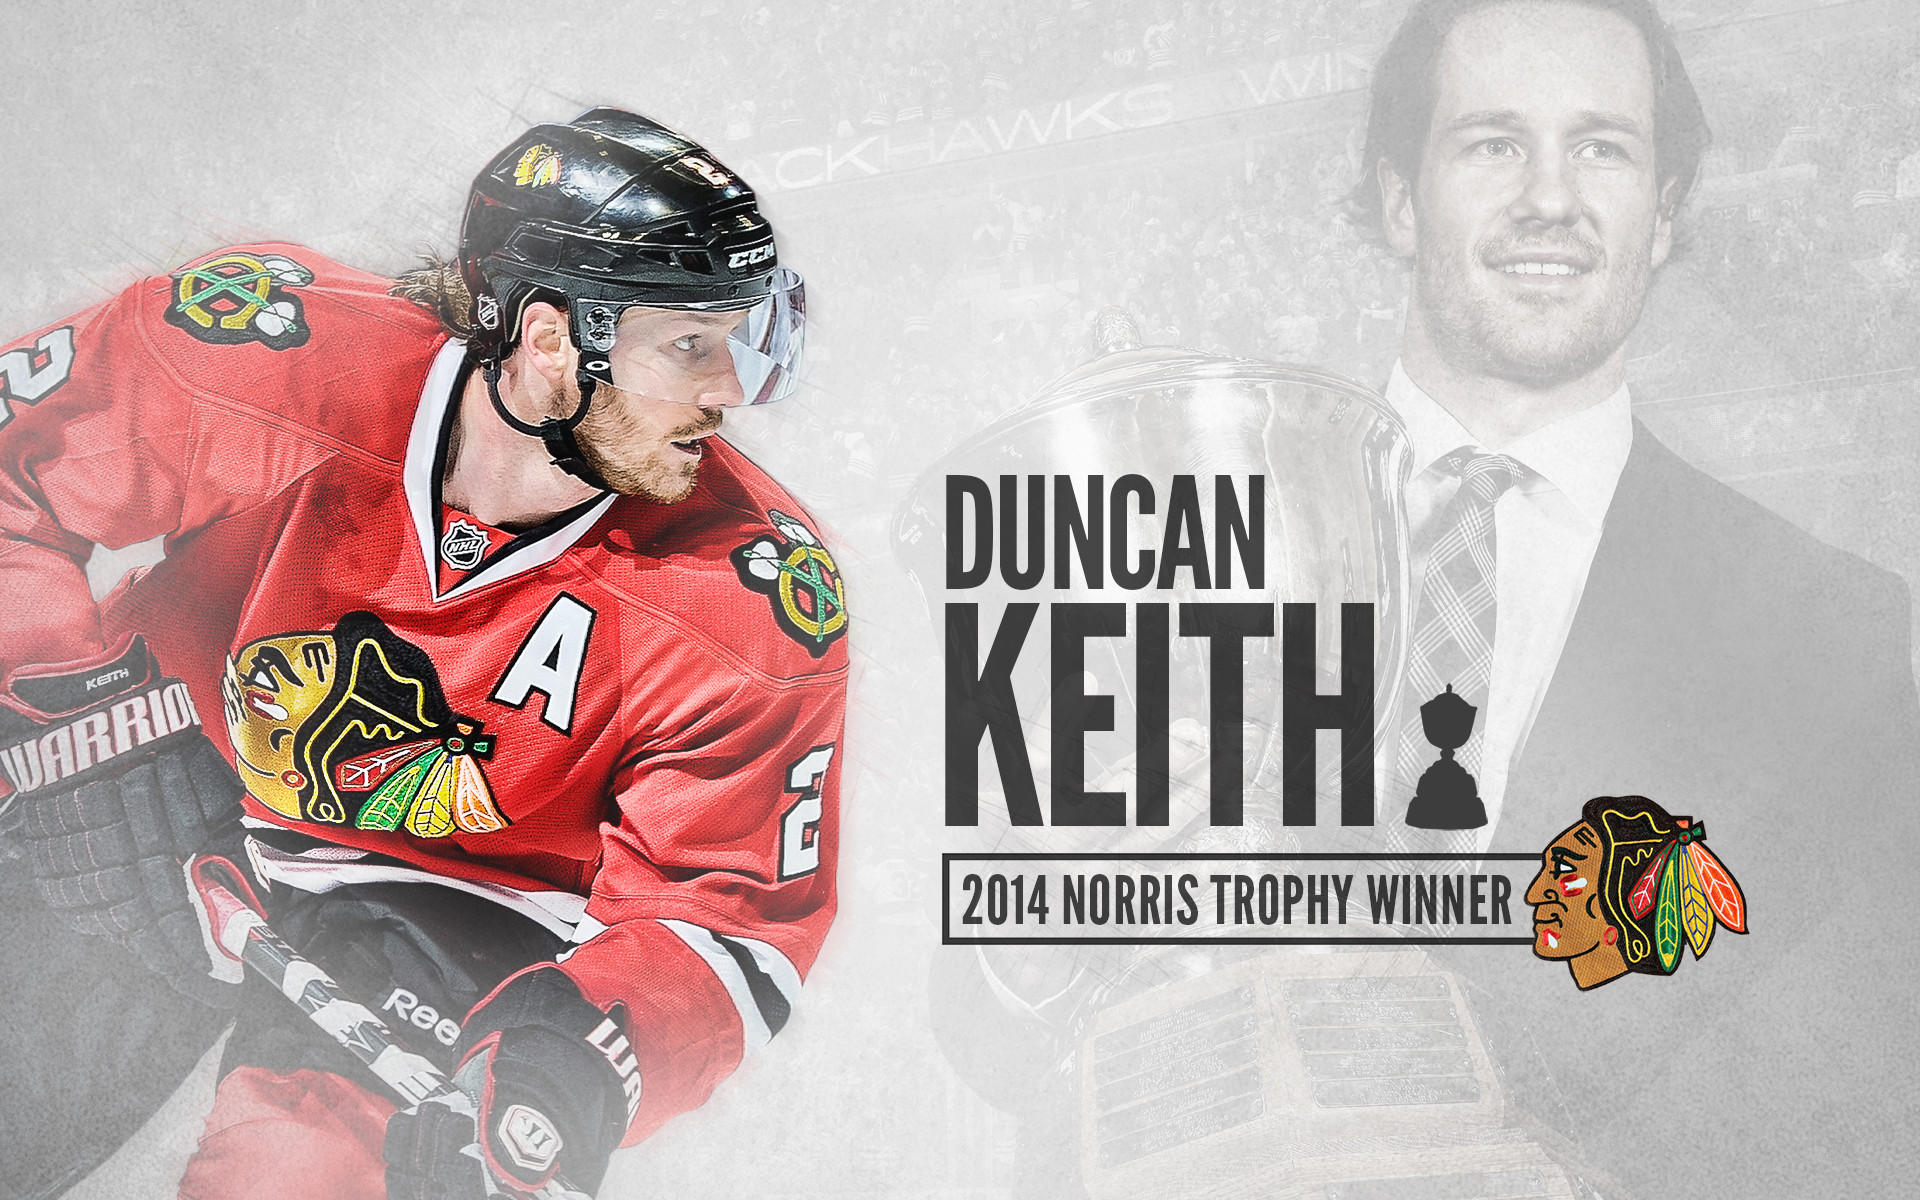 Hd Wallpapers Patrick Kane Wallpaper Top Hockey Wallpapers Picture 900 .